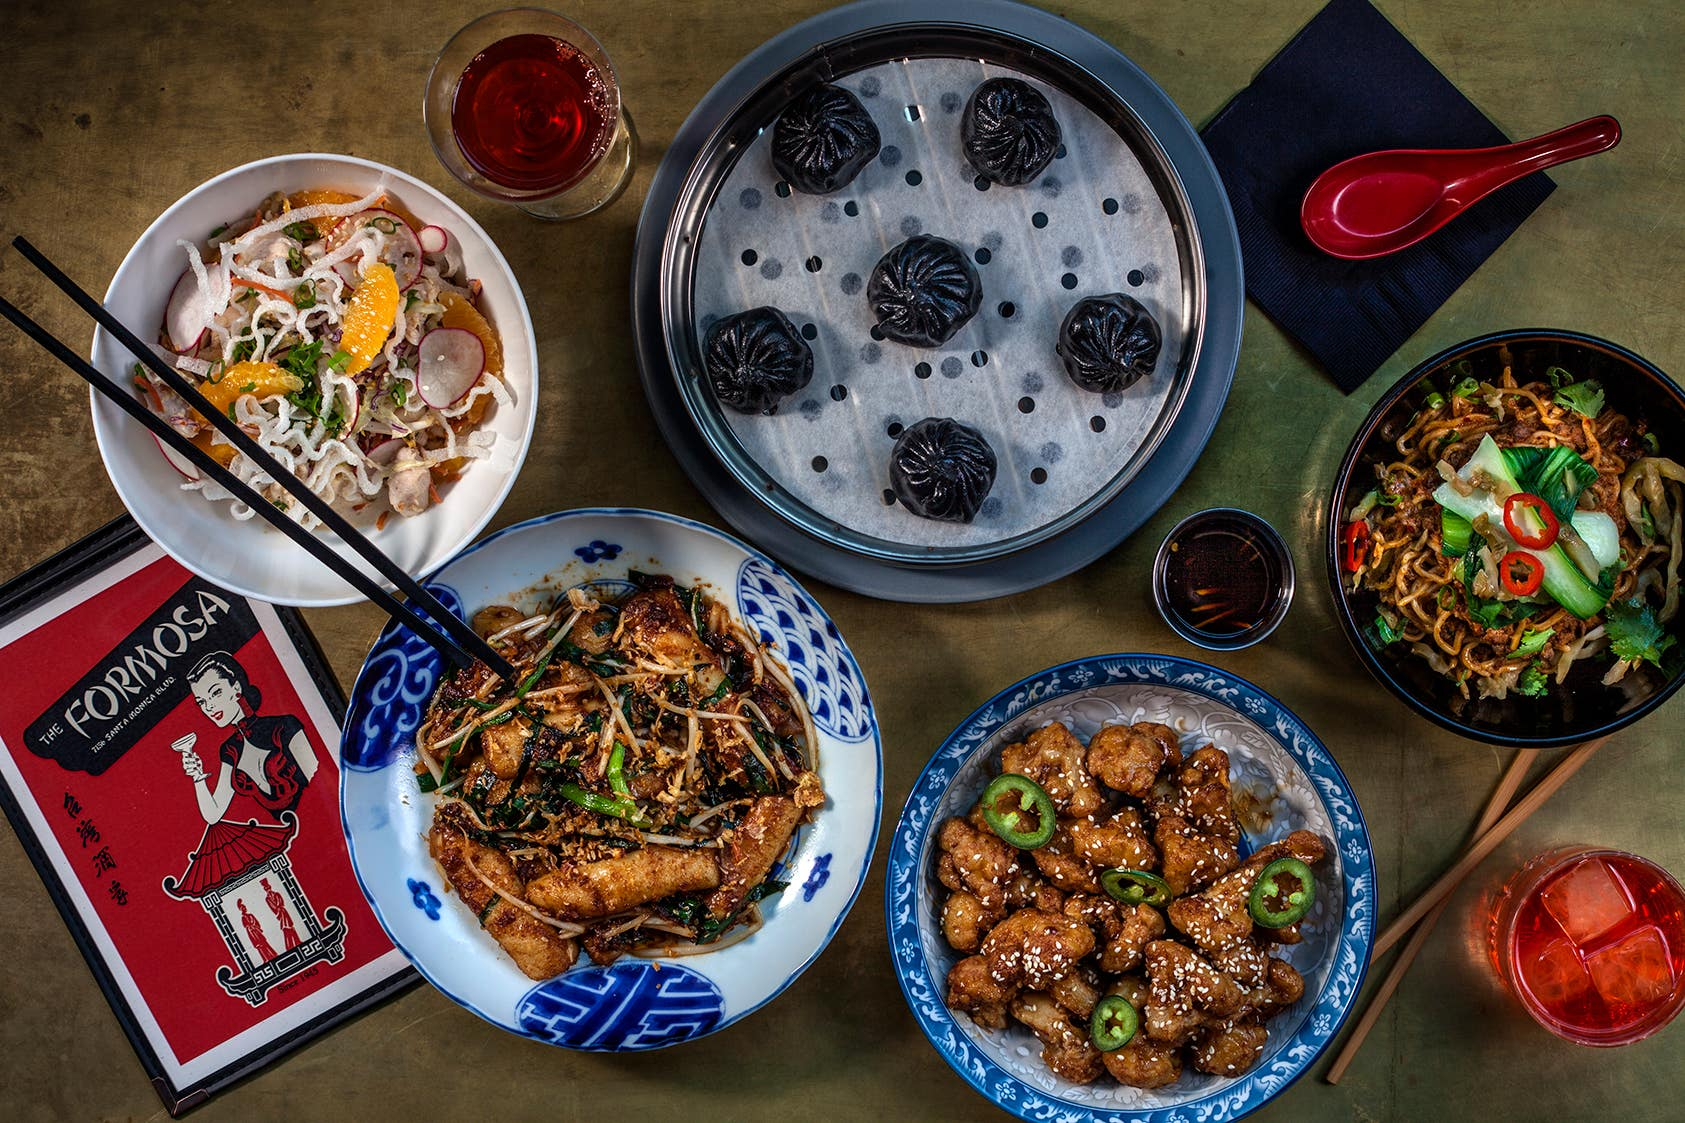 Formosa Cafe dishes created by David Kuo of Little Fatty